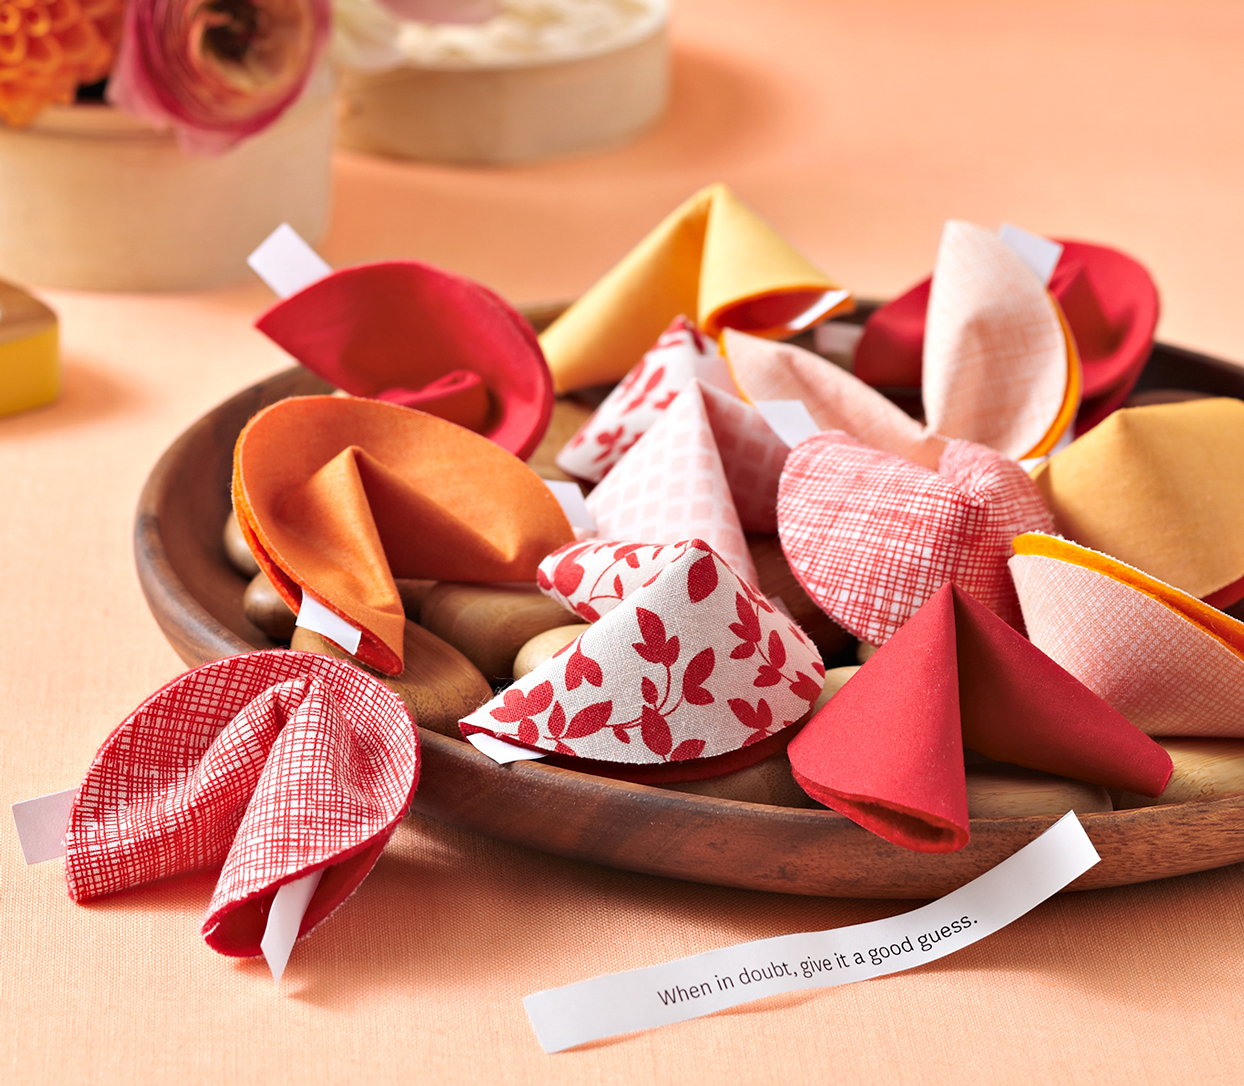 cloth forunate cookies note